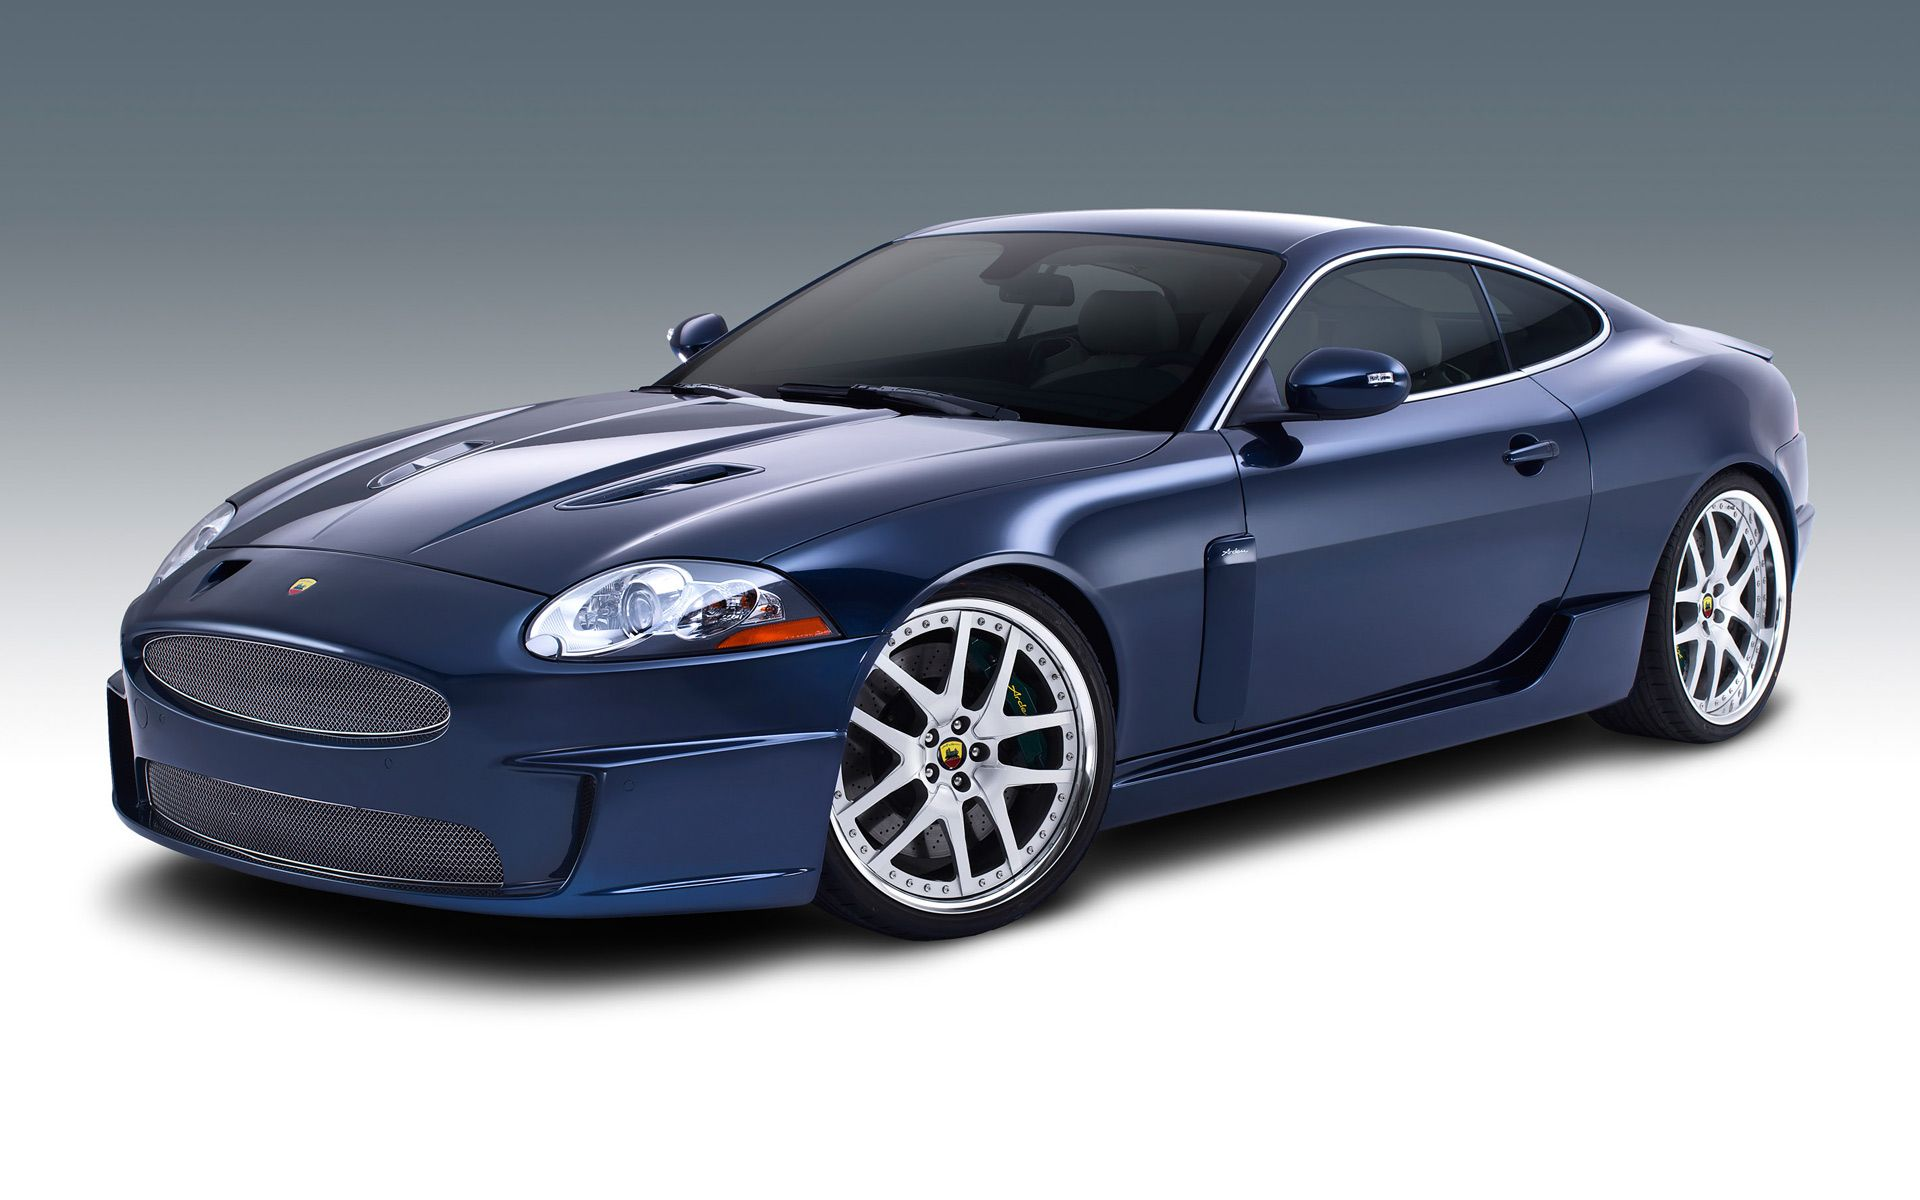 Elegant The Jaguar XKR Launched In 2010 Is A Sophisticated Luxury Sportscar With  High Performance, Which Is Mainly Attributed To Its New Gen III Engine.